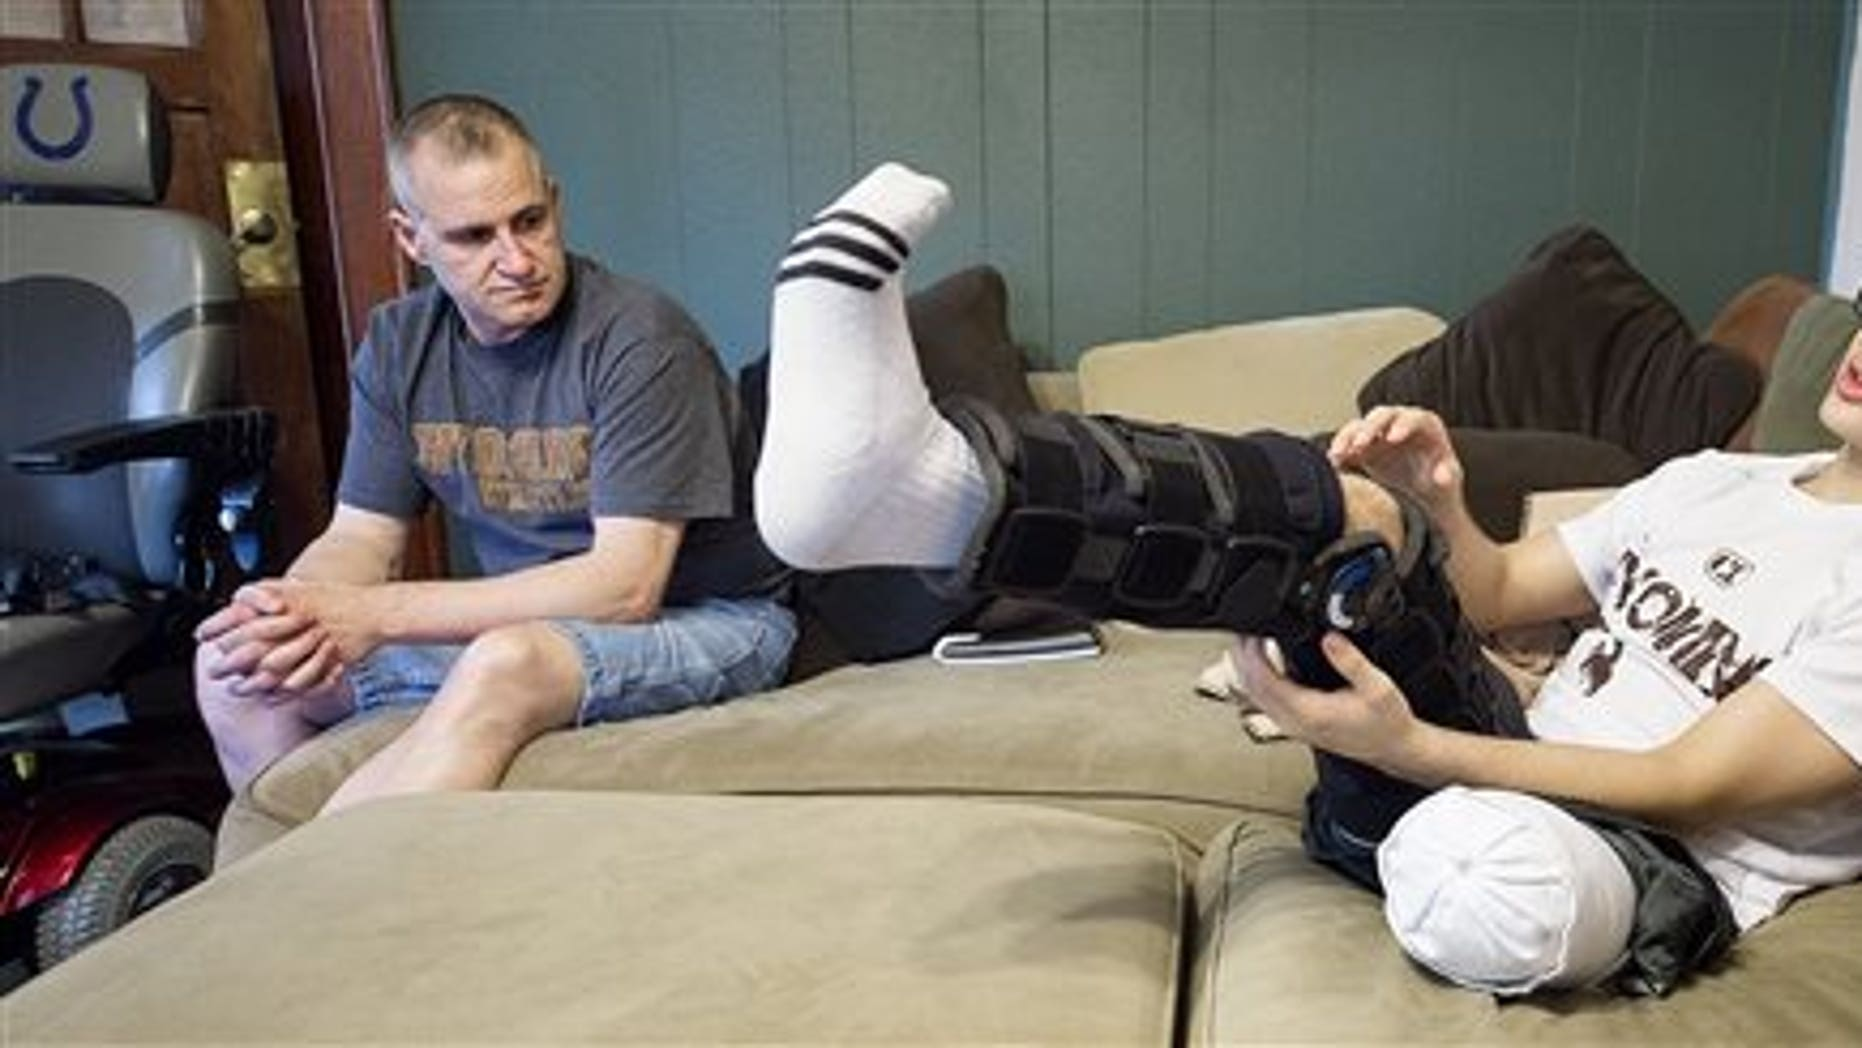 Centennial High School senior Doyle Trout, right, plays with his leg during an interview with his father Jon Trout in the living room of the family's home in Waco, Neb. on Saturday, May 16, 2015.(Francis Gardler/The Journal-Star via AP)